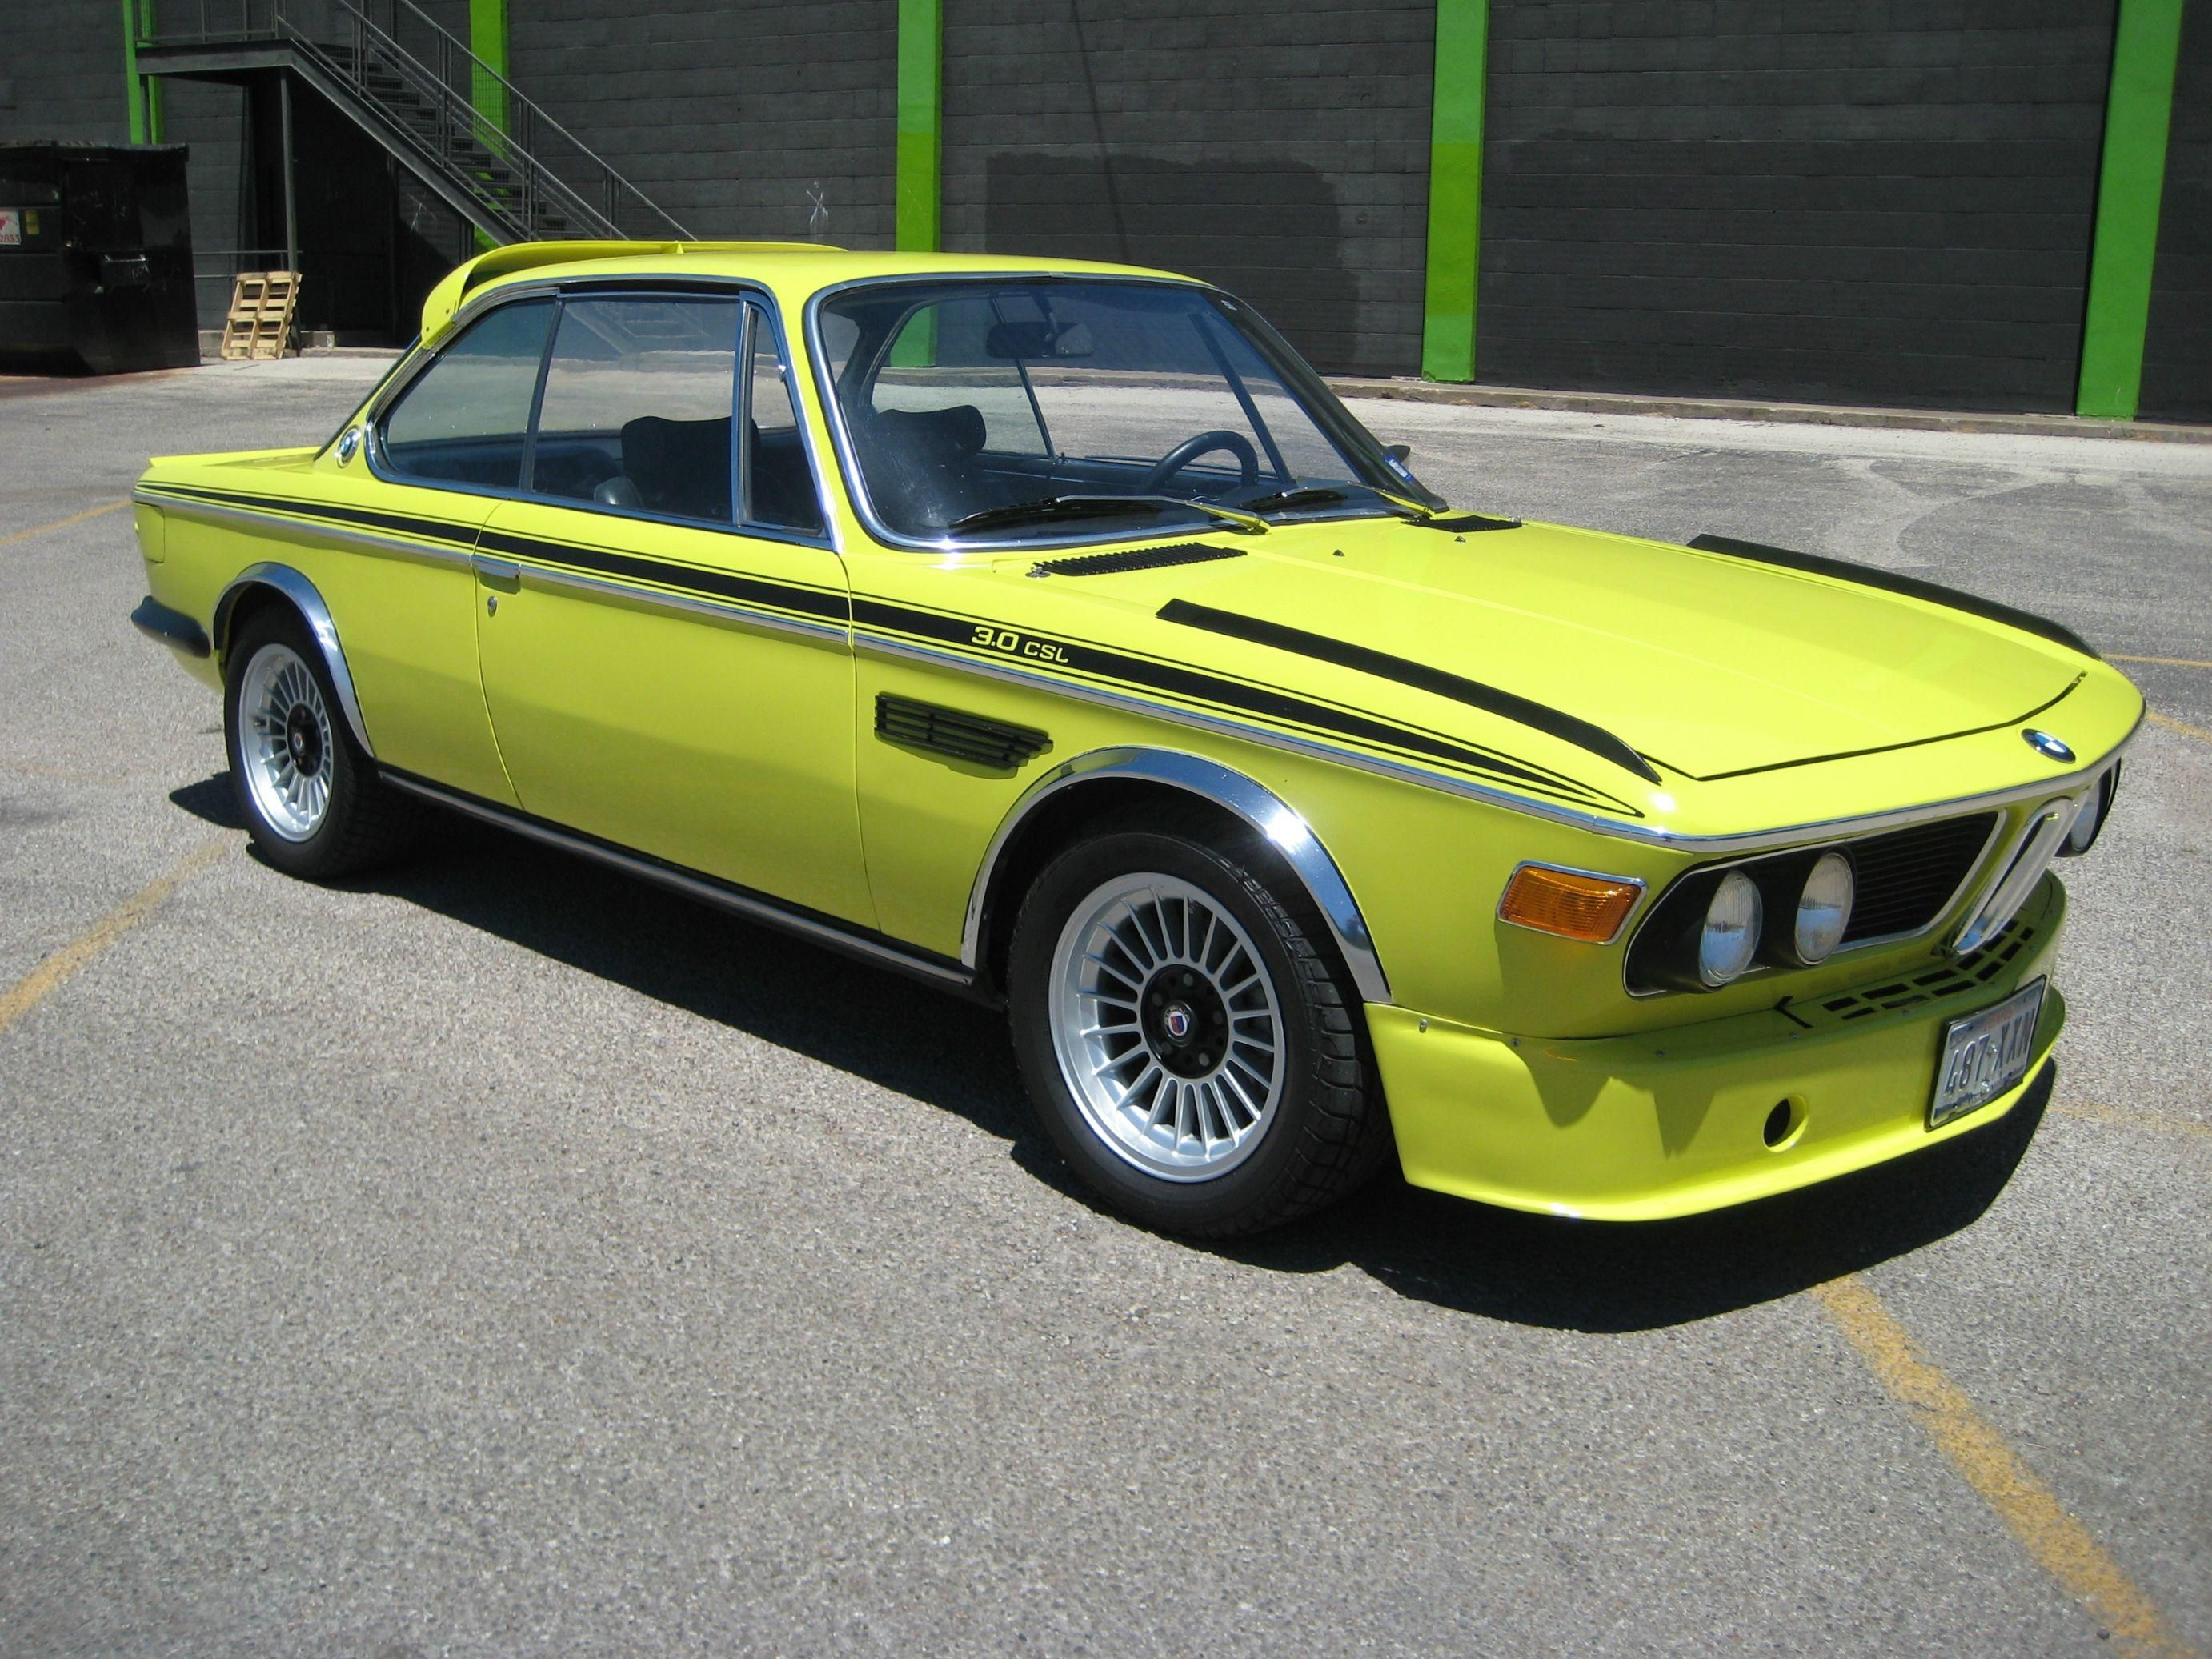 A Classic 1972 Bmw 3 0csl Dressed In A Lime Yellow Color Bmw